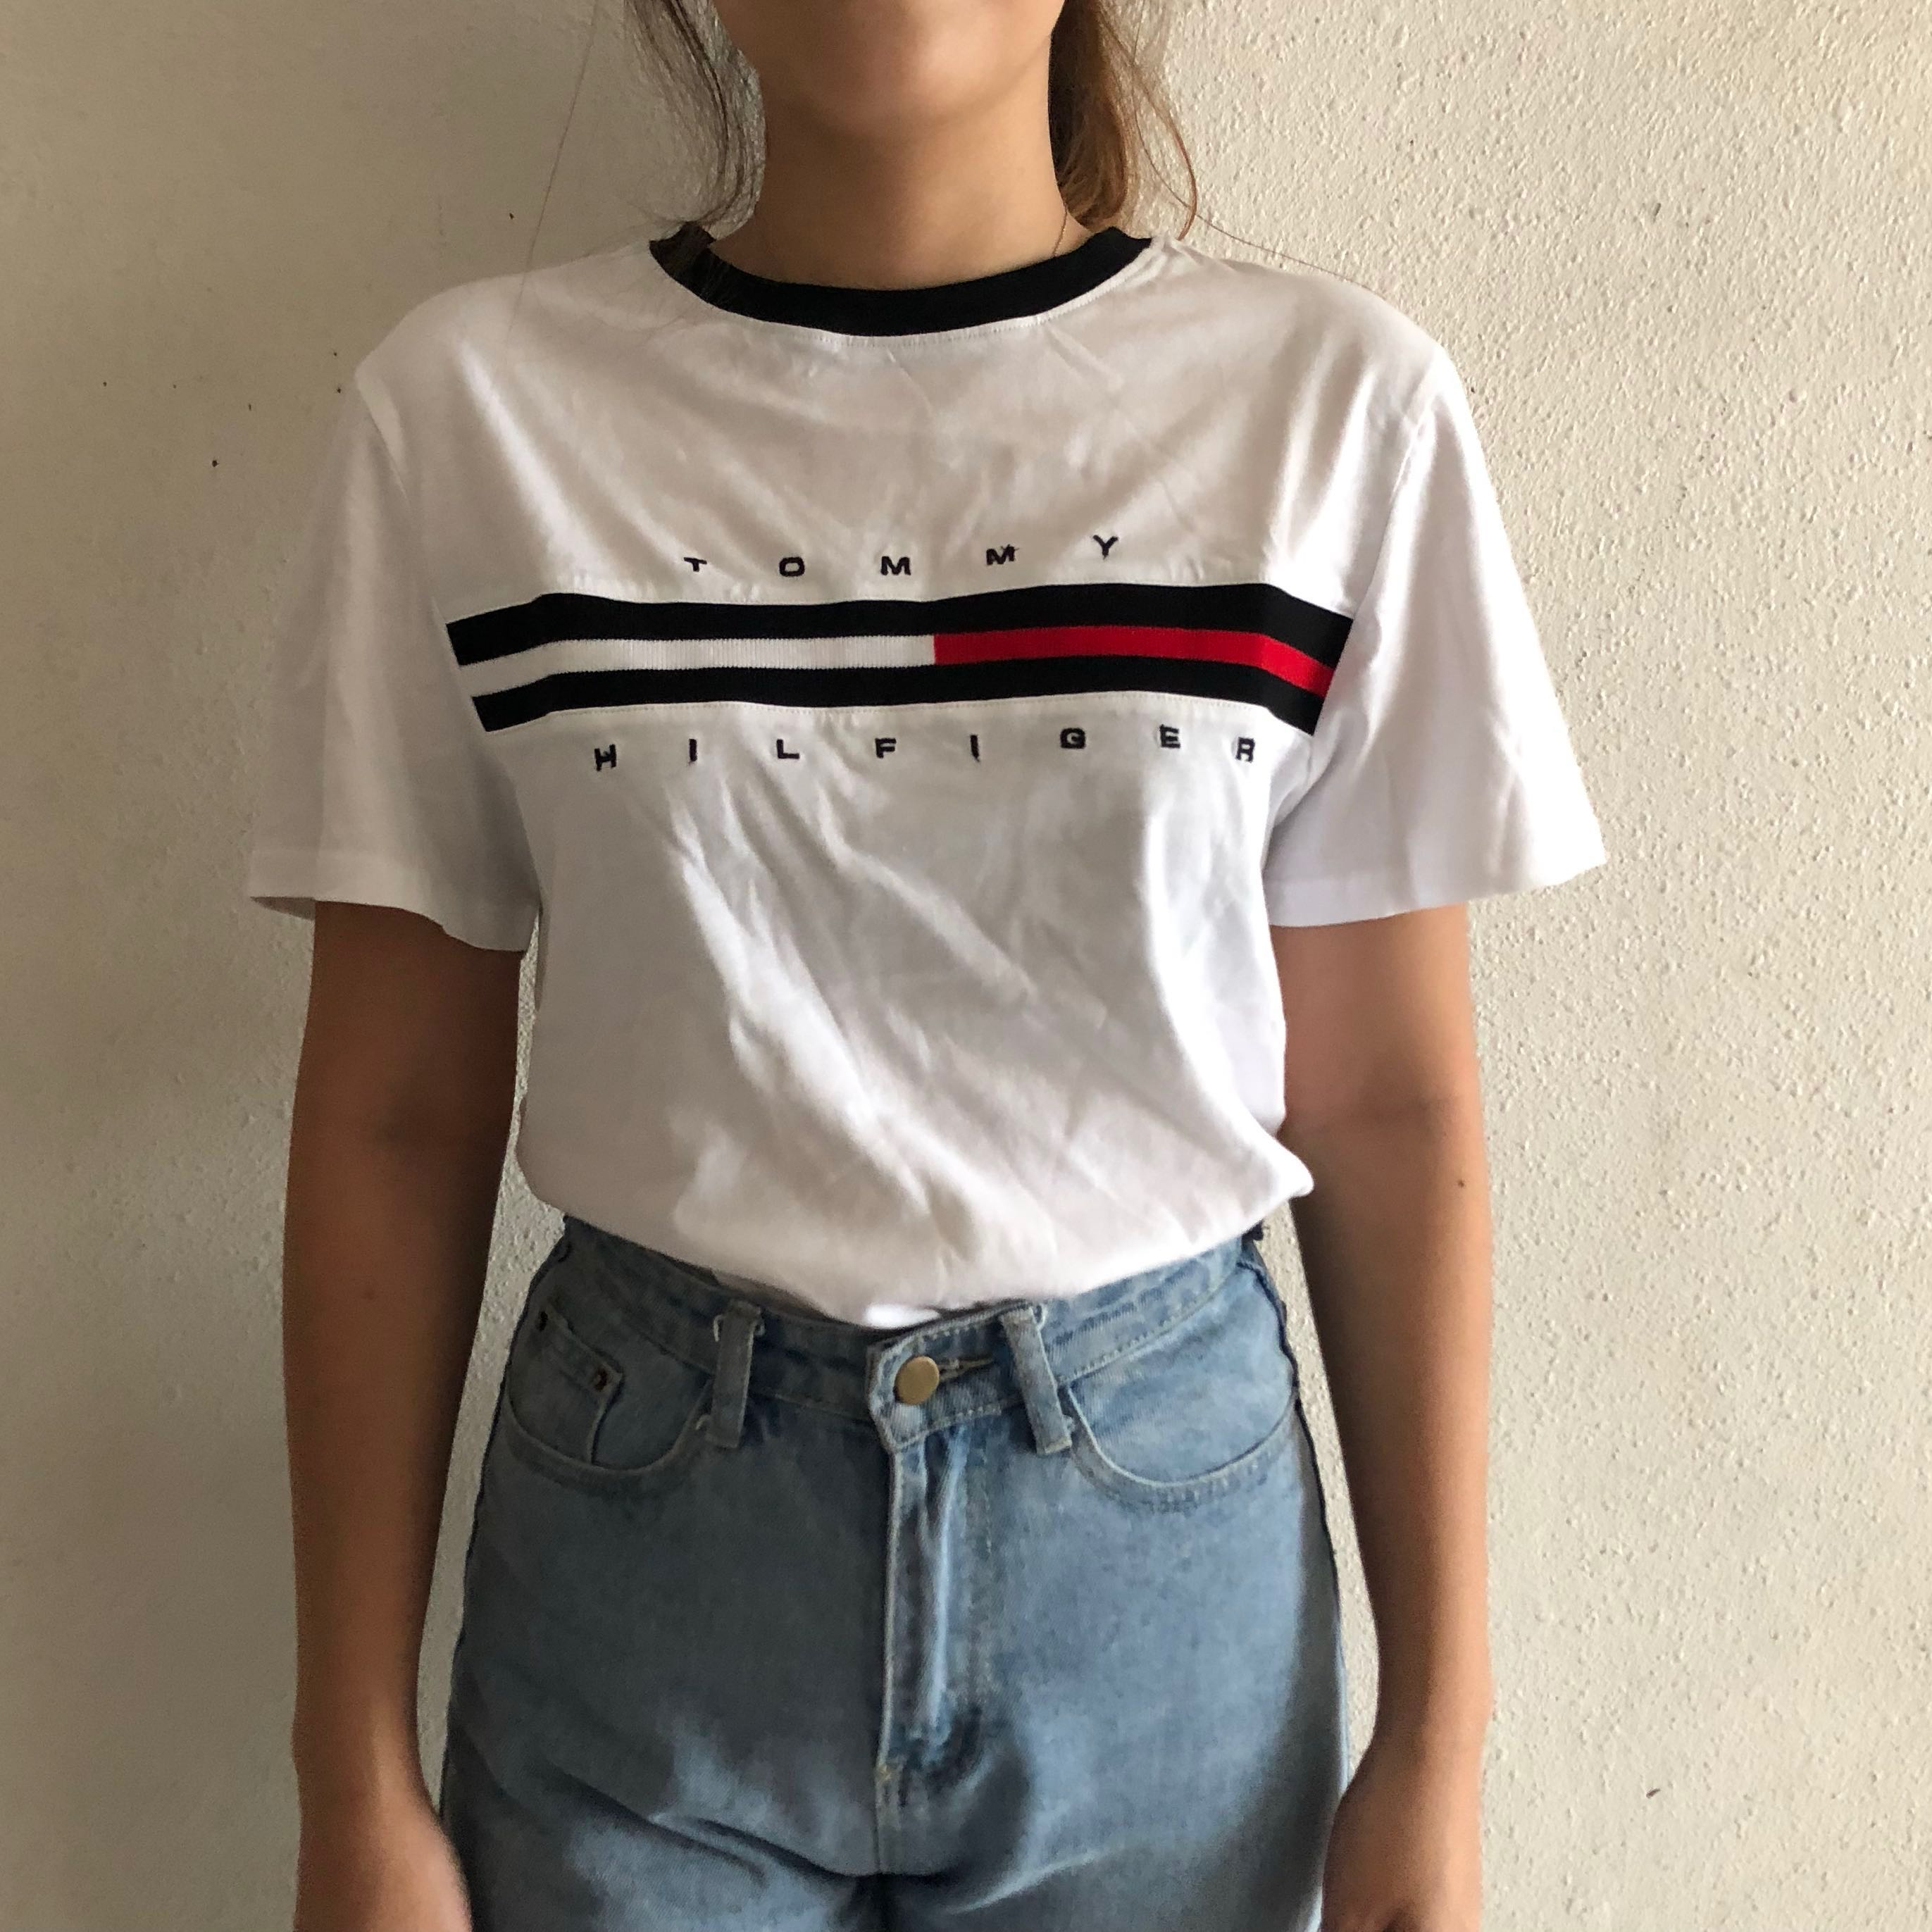 9c34952e *NEW* Tommy Hilfiger Ringer T-Shirt (UK 6-8), Women's Fashion, Clothes,  Tops on Carousell